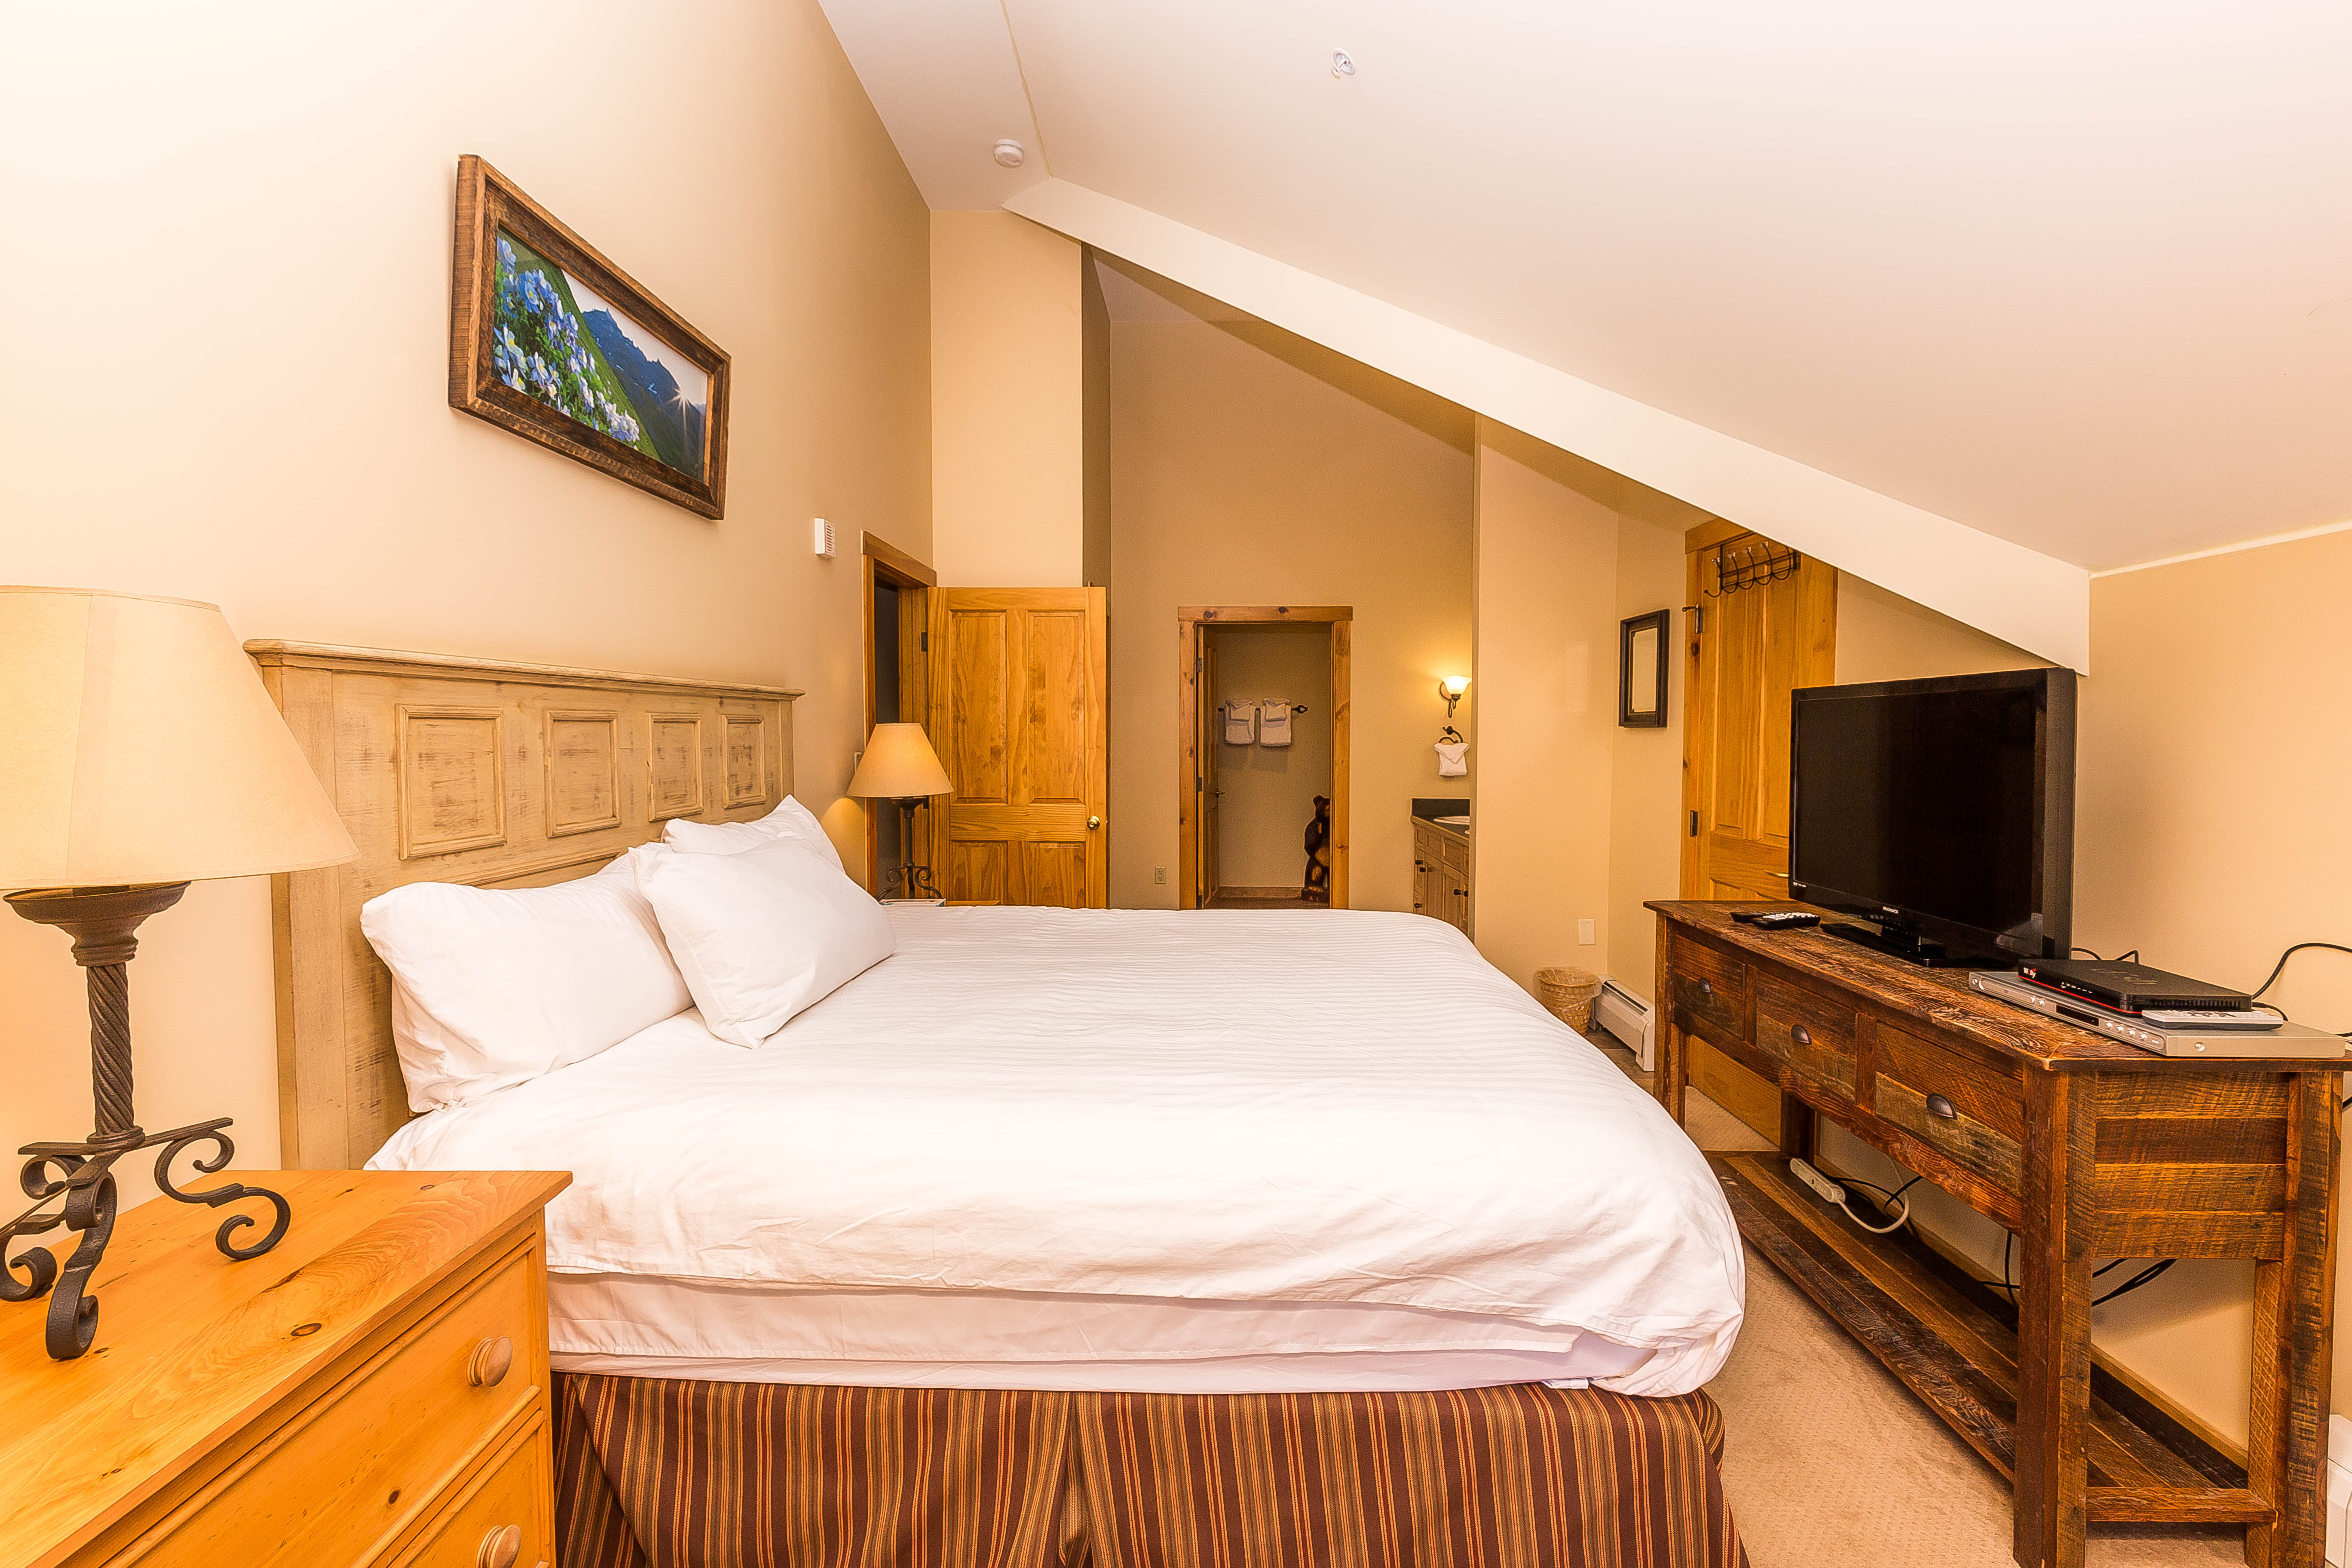 The master bedroom features a king-sized bed with Ivory White Bedding, a flat screen TV and its own access to the private balcony.